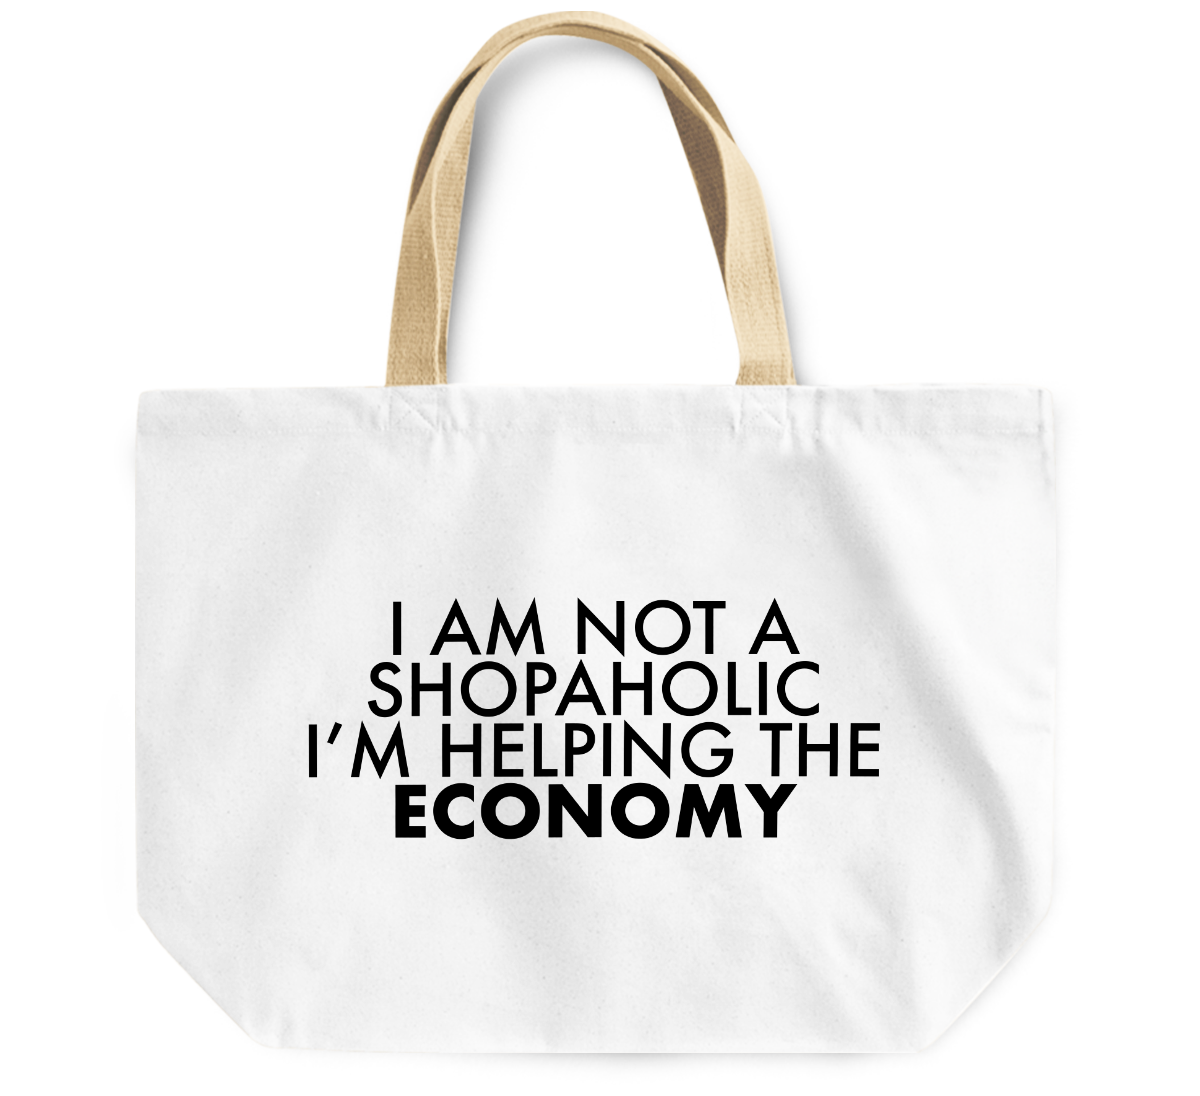 Tote Bag I am not a shopaholic, im helping the economy By Loud Universe